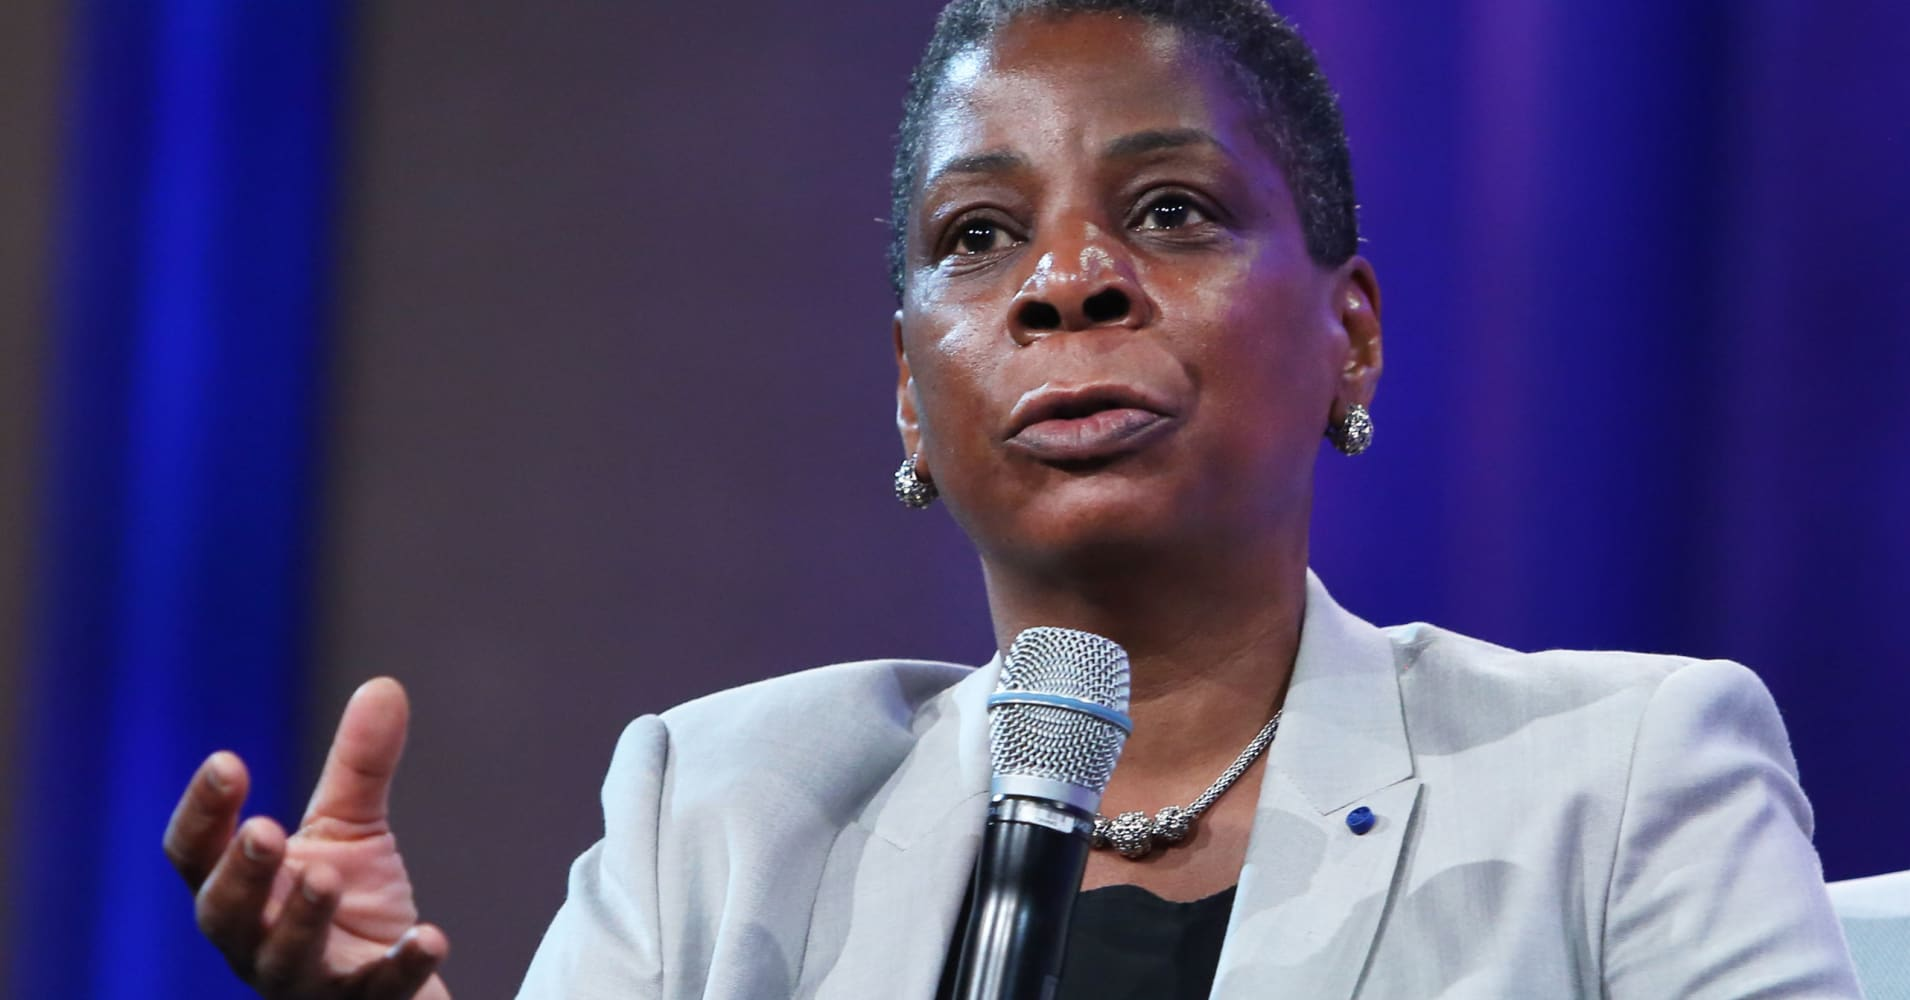 Ursula Burns, CEO of Xerox speaking at the 2105 CGI Annual Meeting in New York.